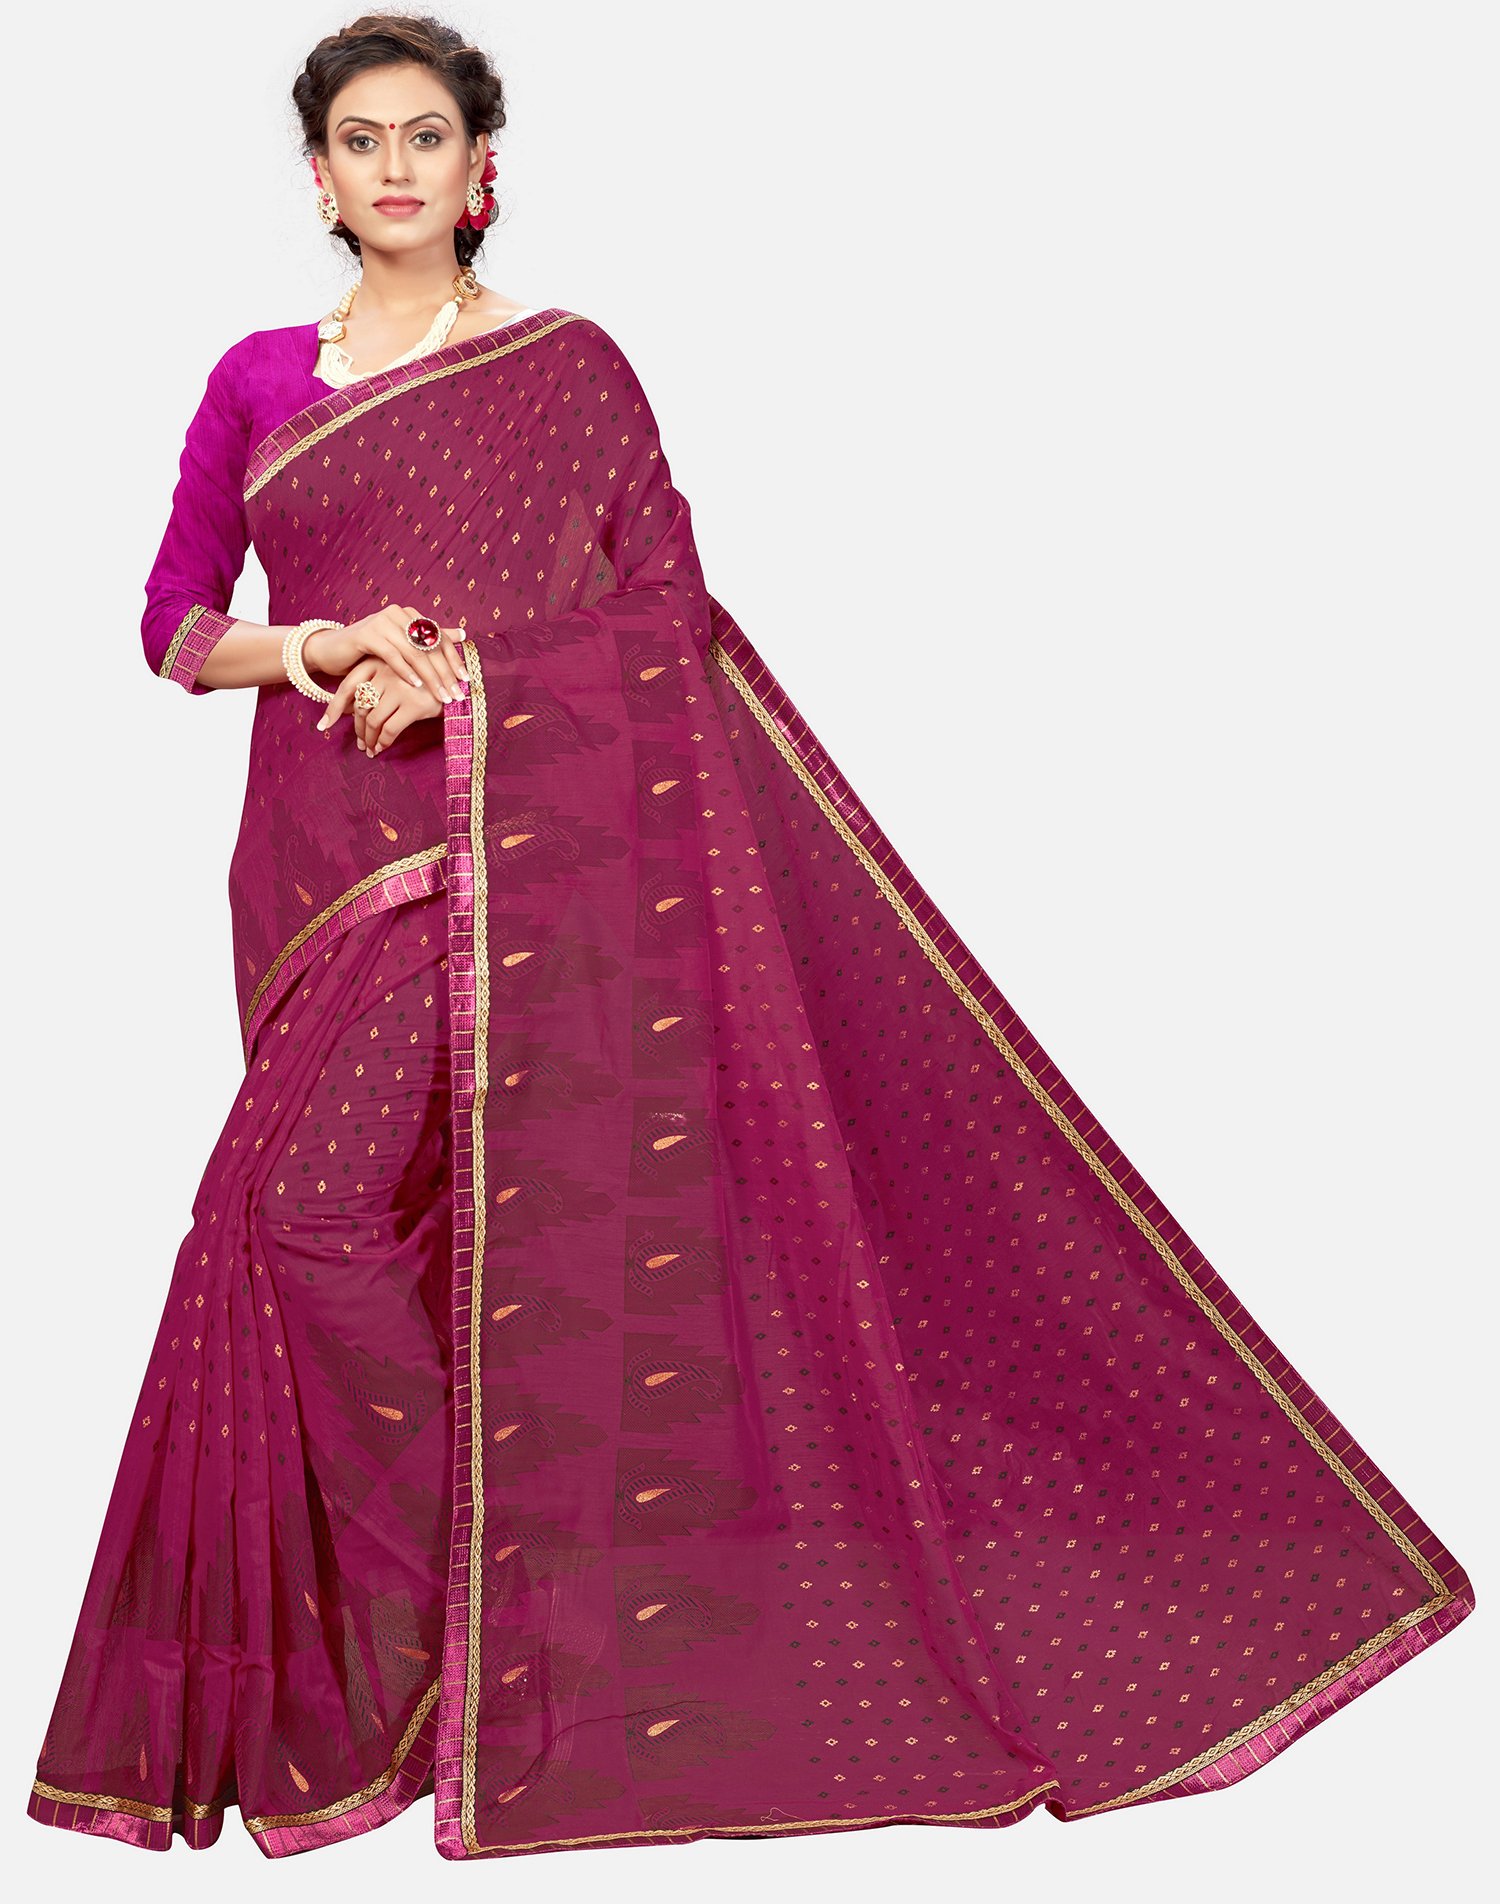 992d1f5b6c Dark pink printed chanderi cotton saree with blouse - Vastrang - 2707578